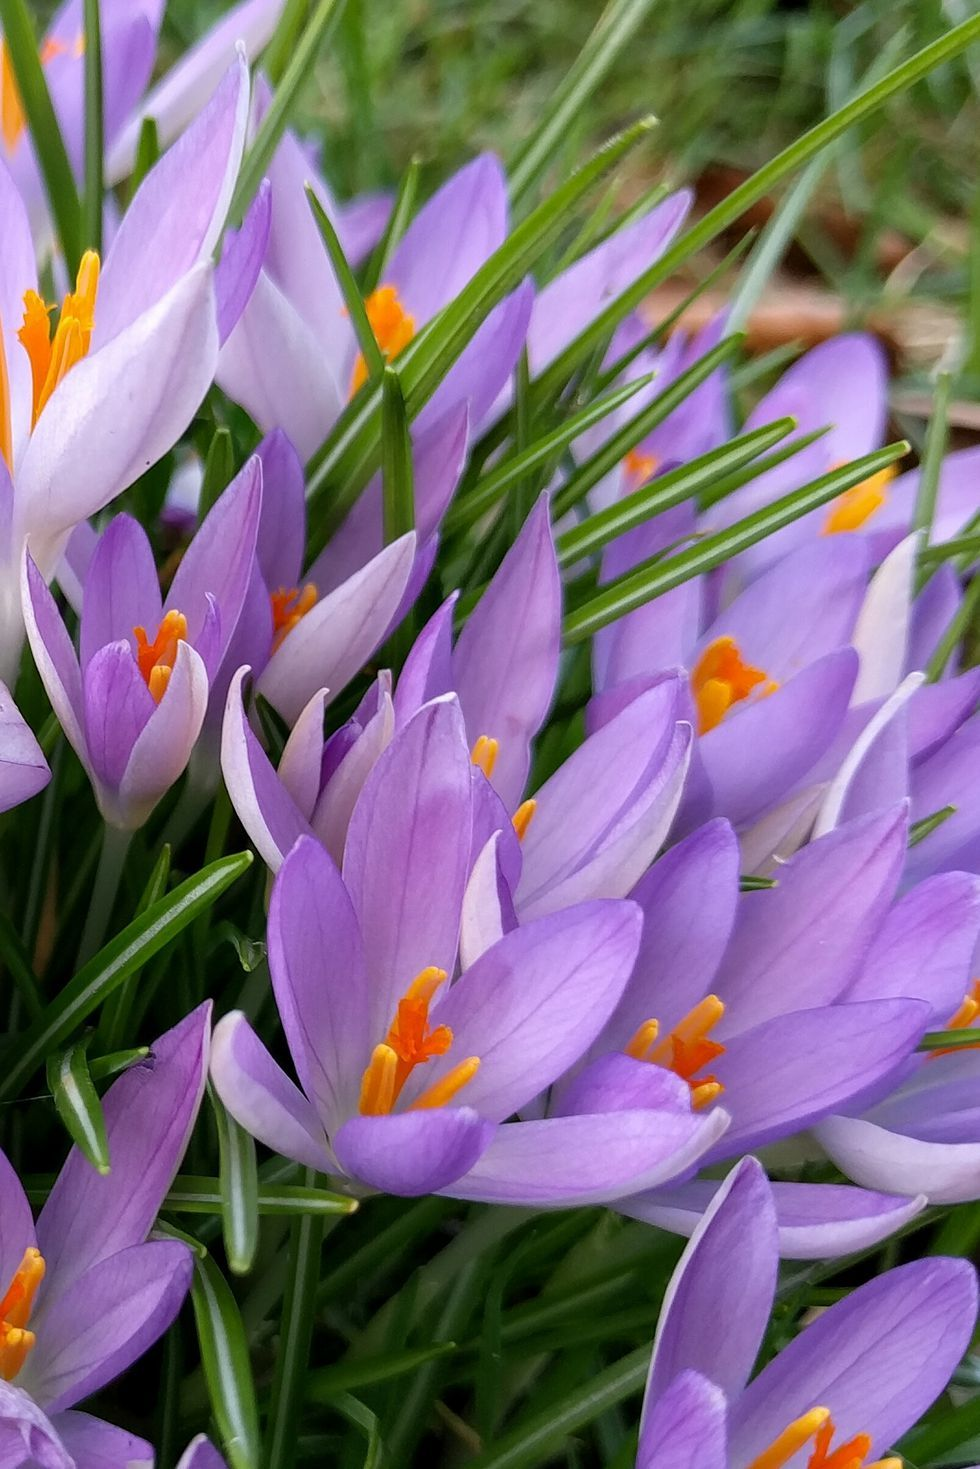 The Surprising Meanings Behind Your Favorite Flowers